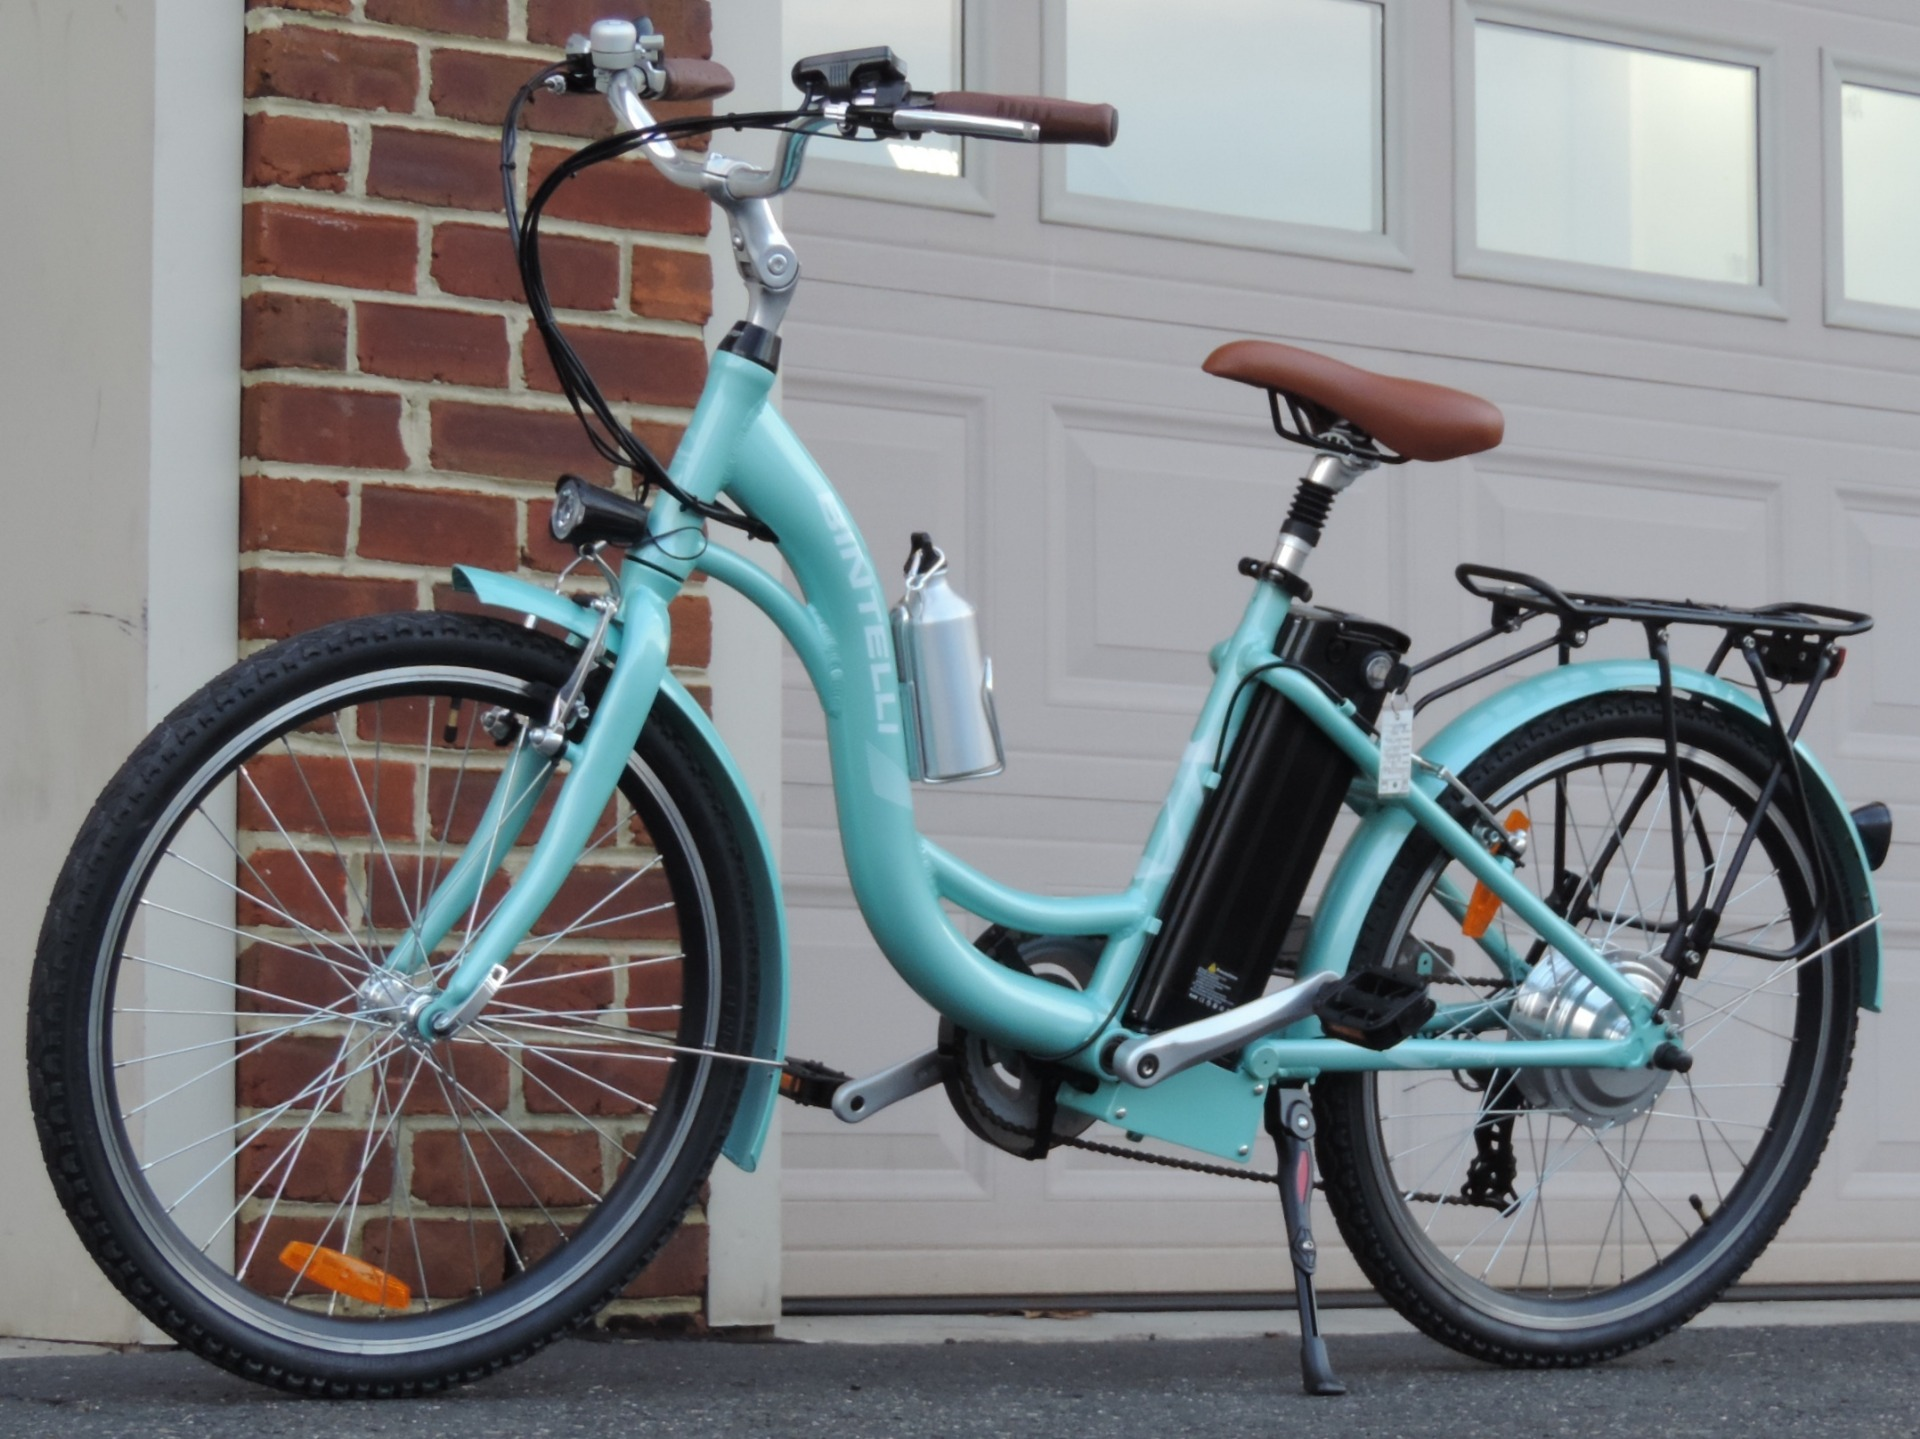 New 2019 Bintelli Journey Electric Cruiser | Edgewater Park, NJ